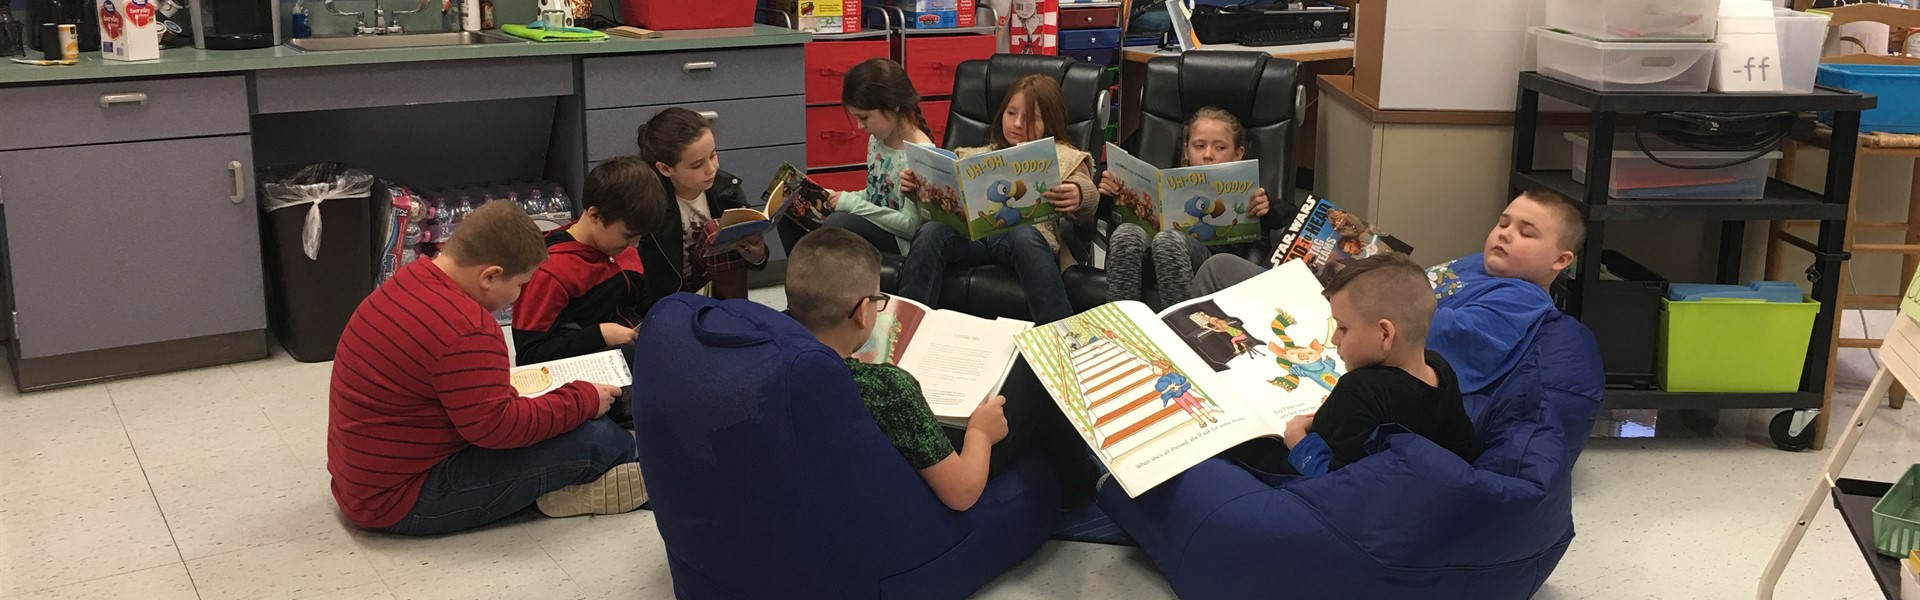 Students enjoy books donated by the Save the Children Program.